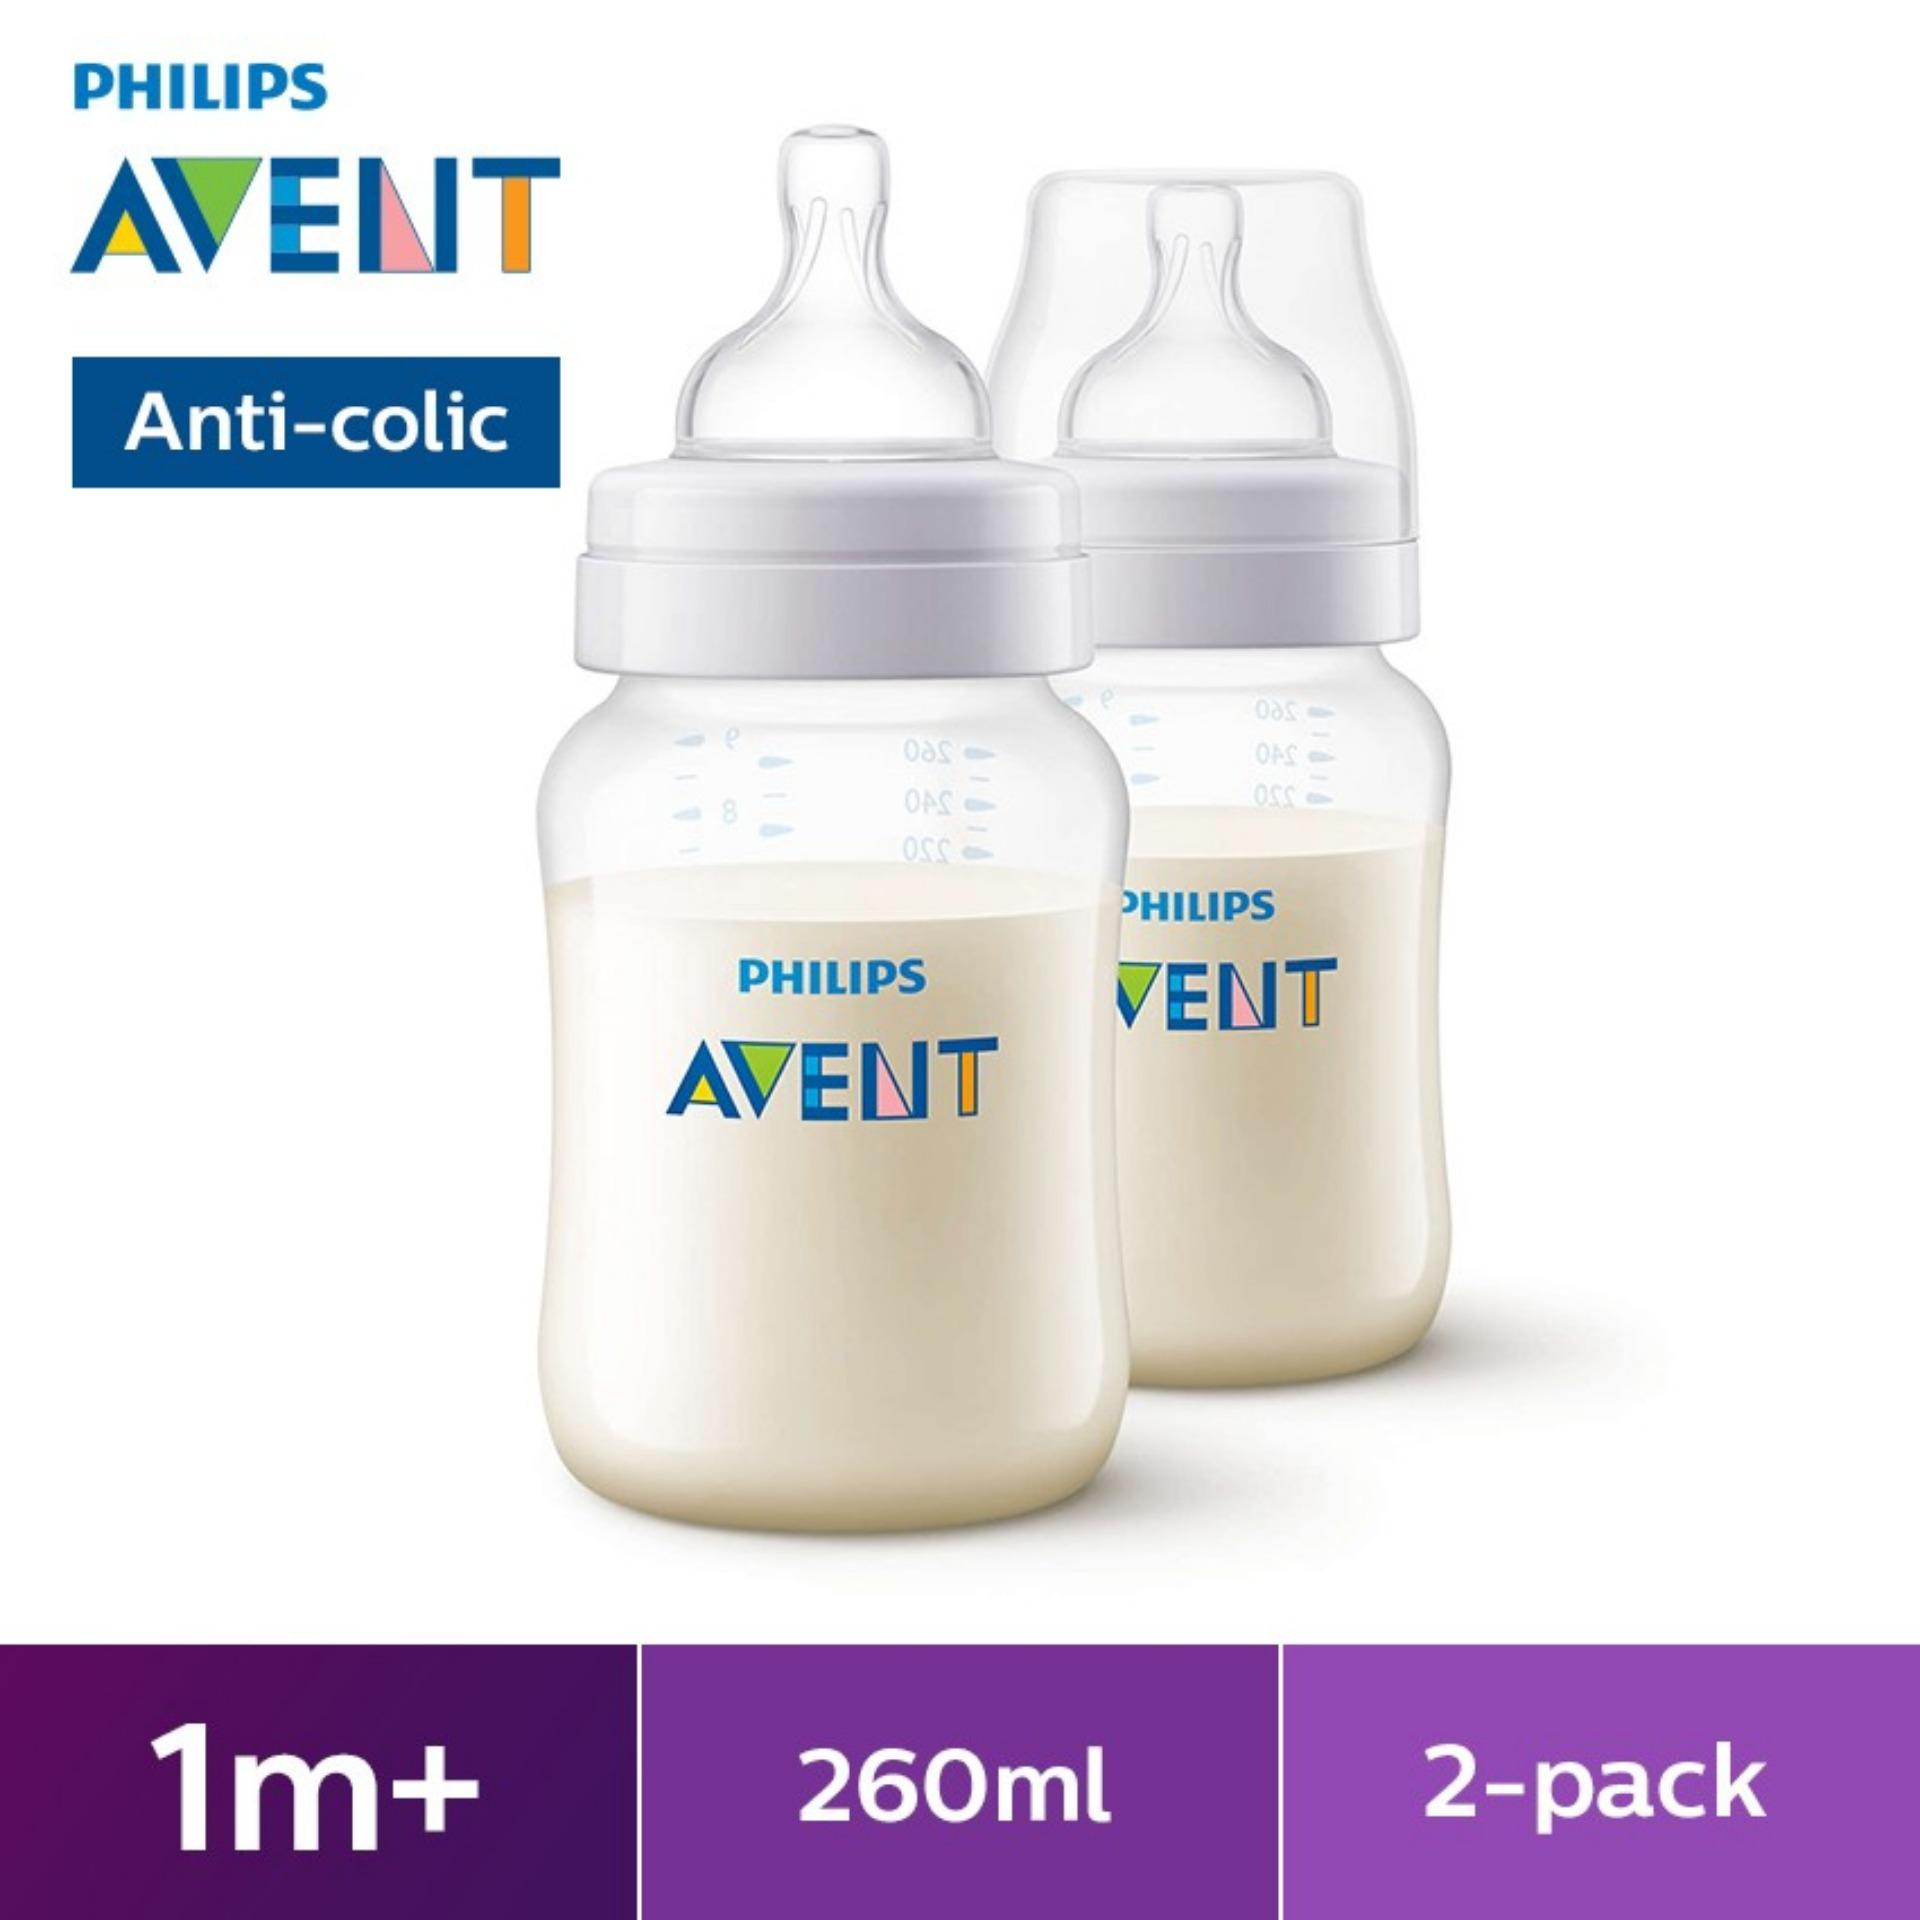 Philips Avent 9oz Bpa-Free (pp) Bottle 2 Pack By Lazada Retail Philips Avent.